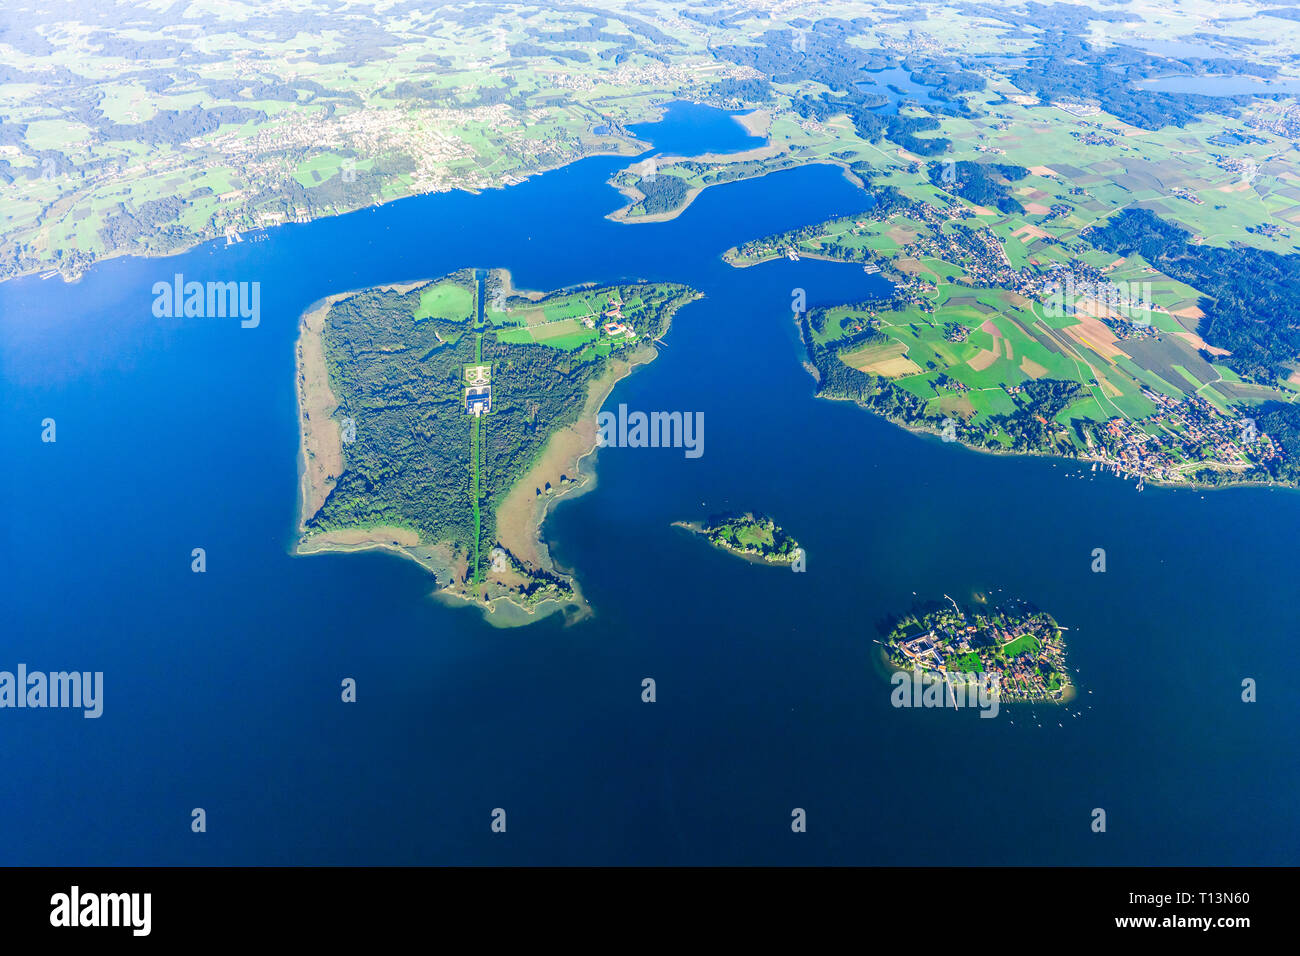 Germany, Bavaria, Chiemgau, Aerial view of Lake Chiemsee, Herrenchiemsee, Krautinsel and Frauenchiemsee - Stock Image